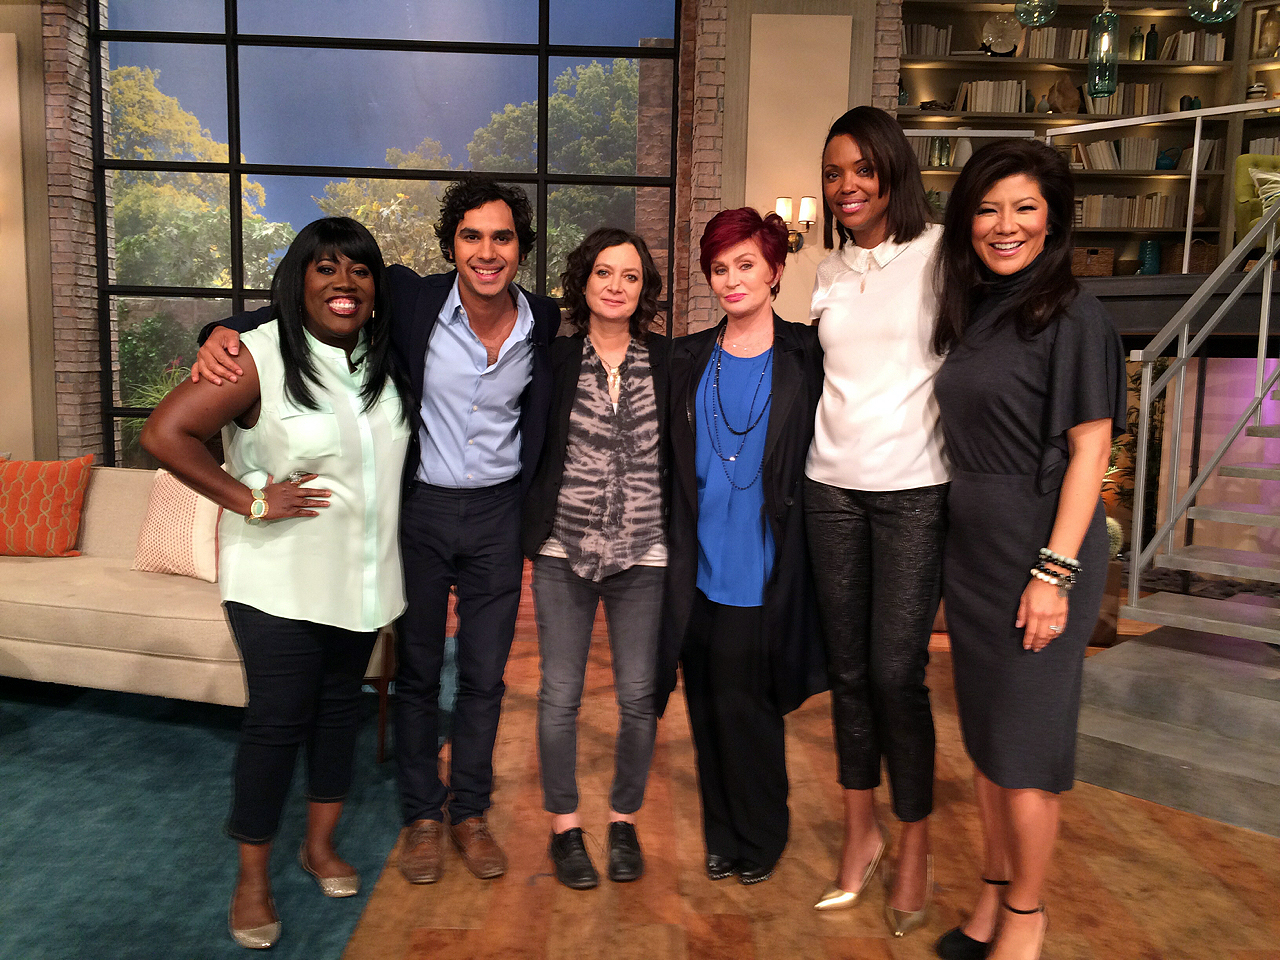 7. Our Old Friend Kunal Nayyar Stopped By!